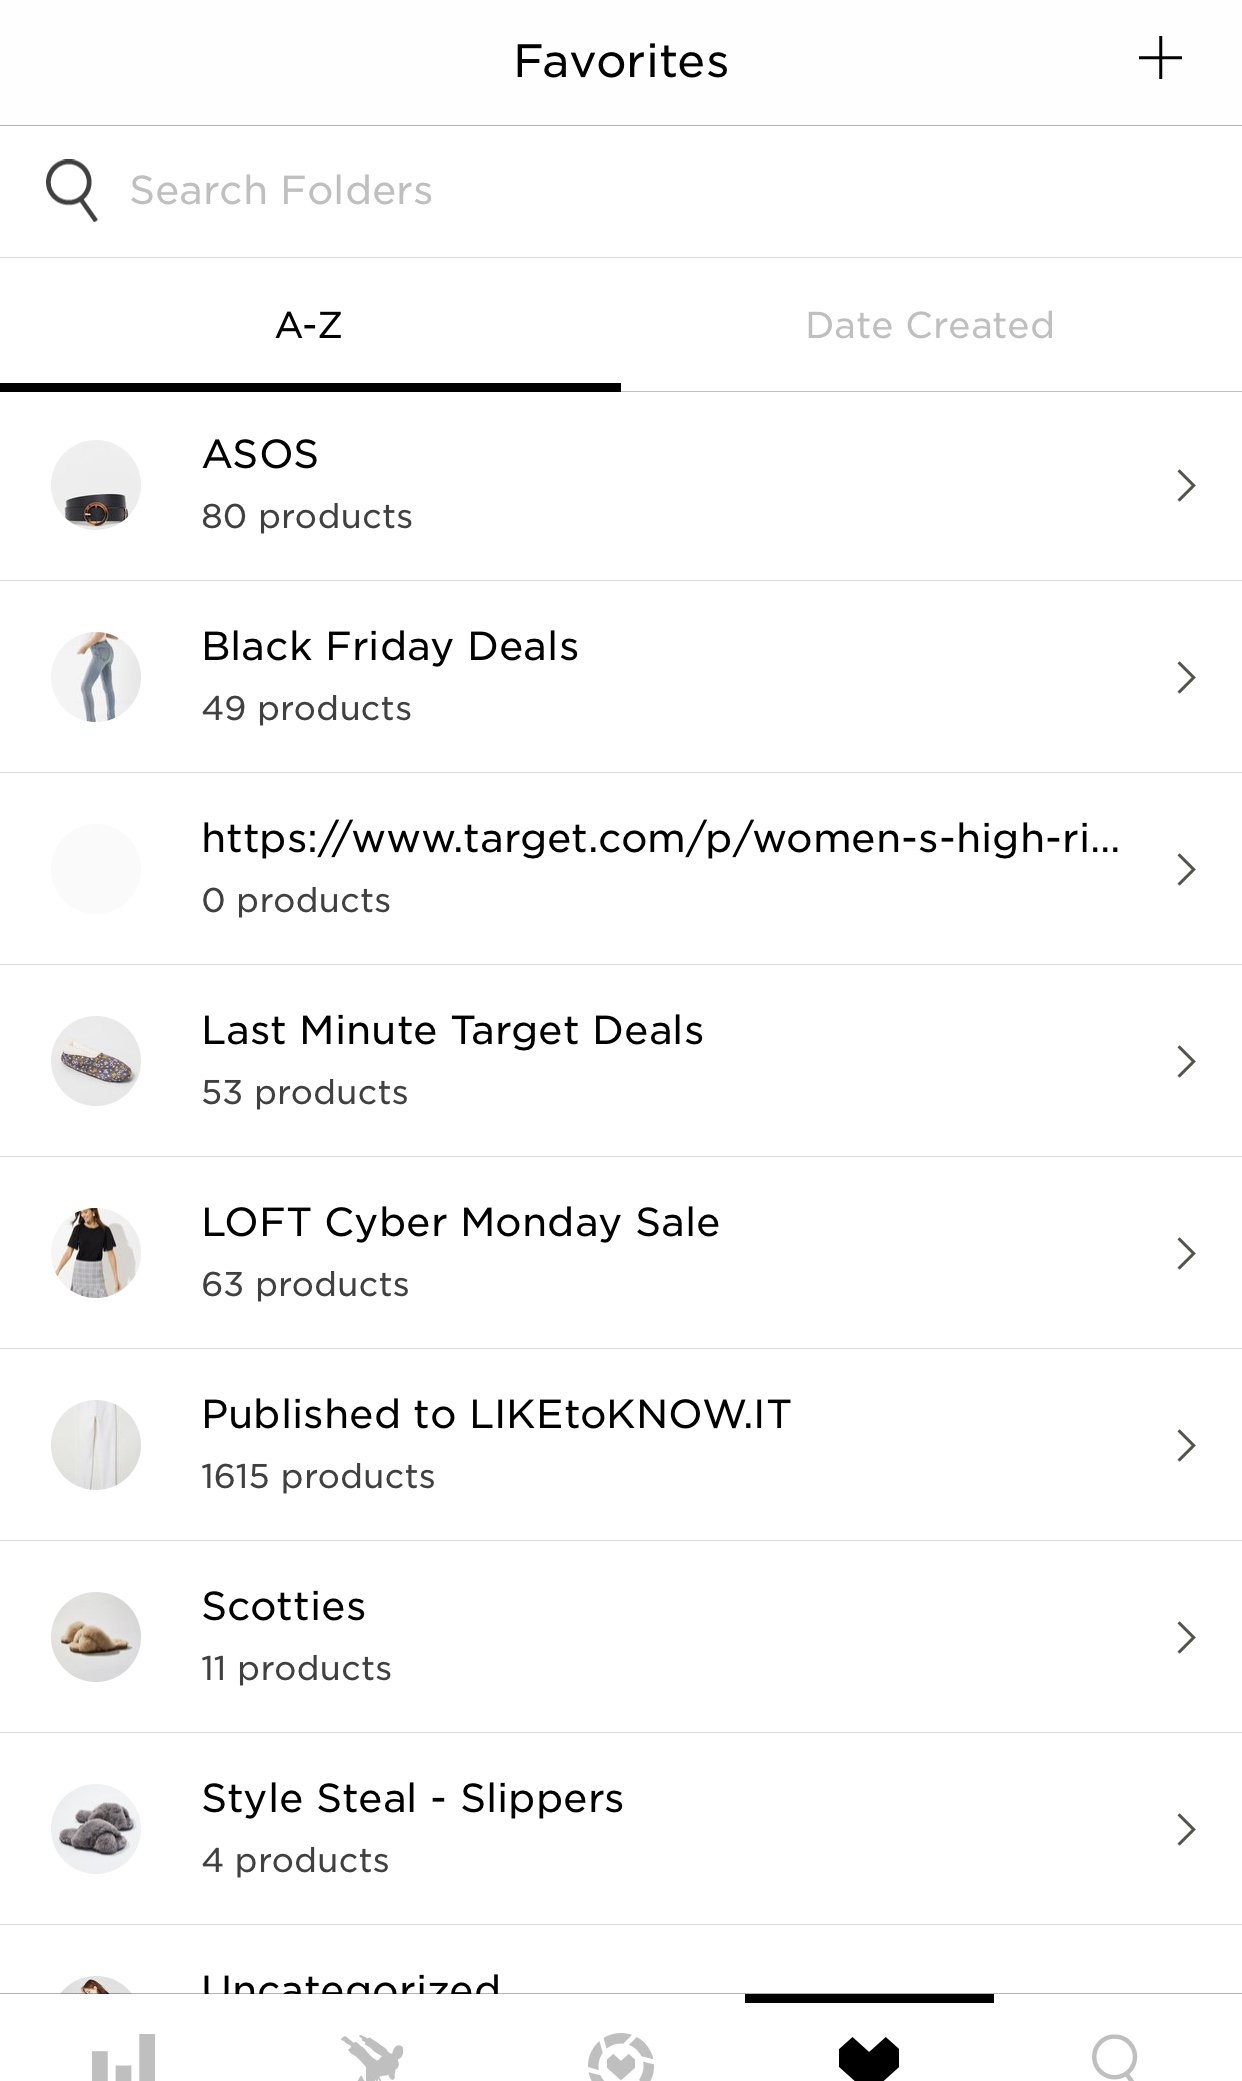 Favorites Section of the RewardStyle Mobile App